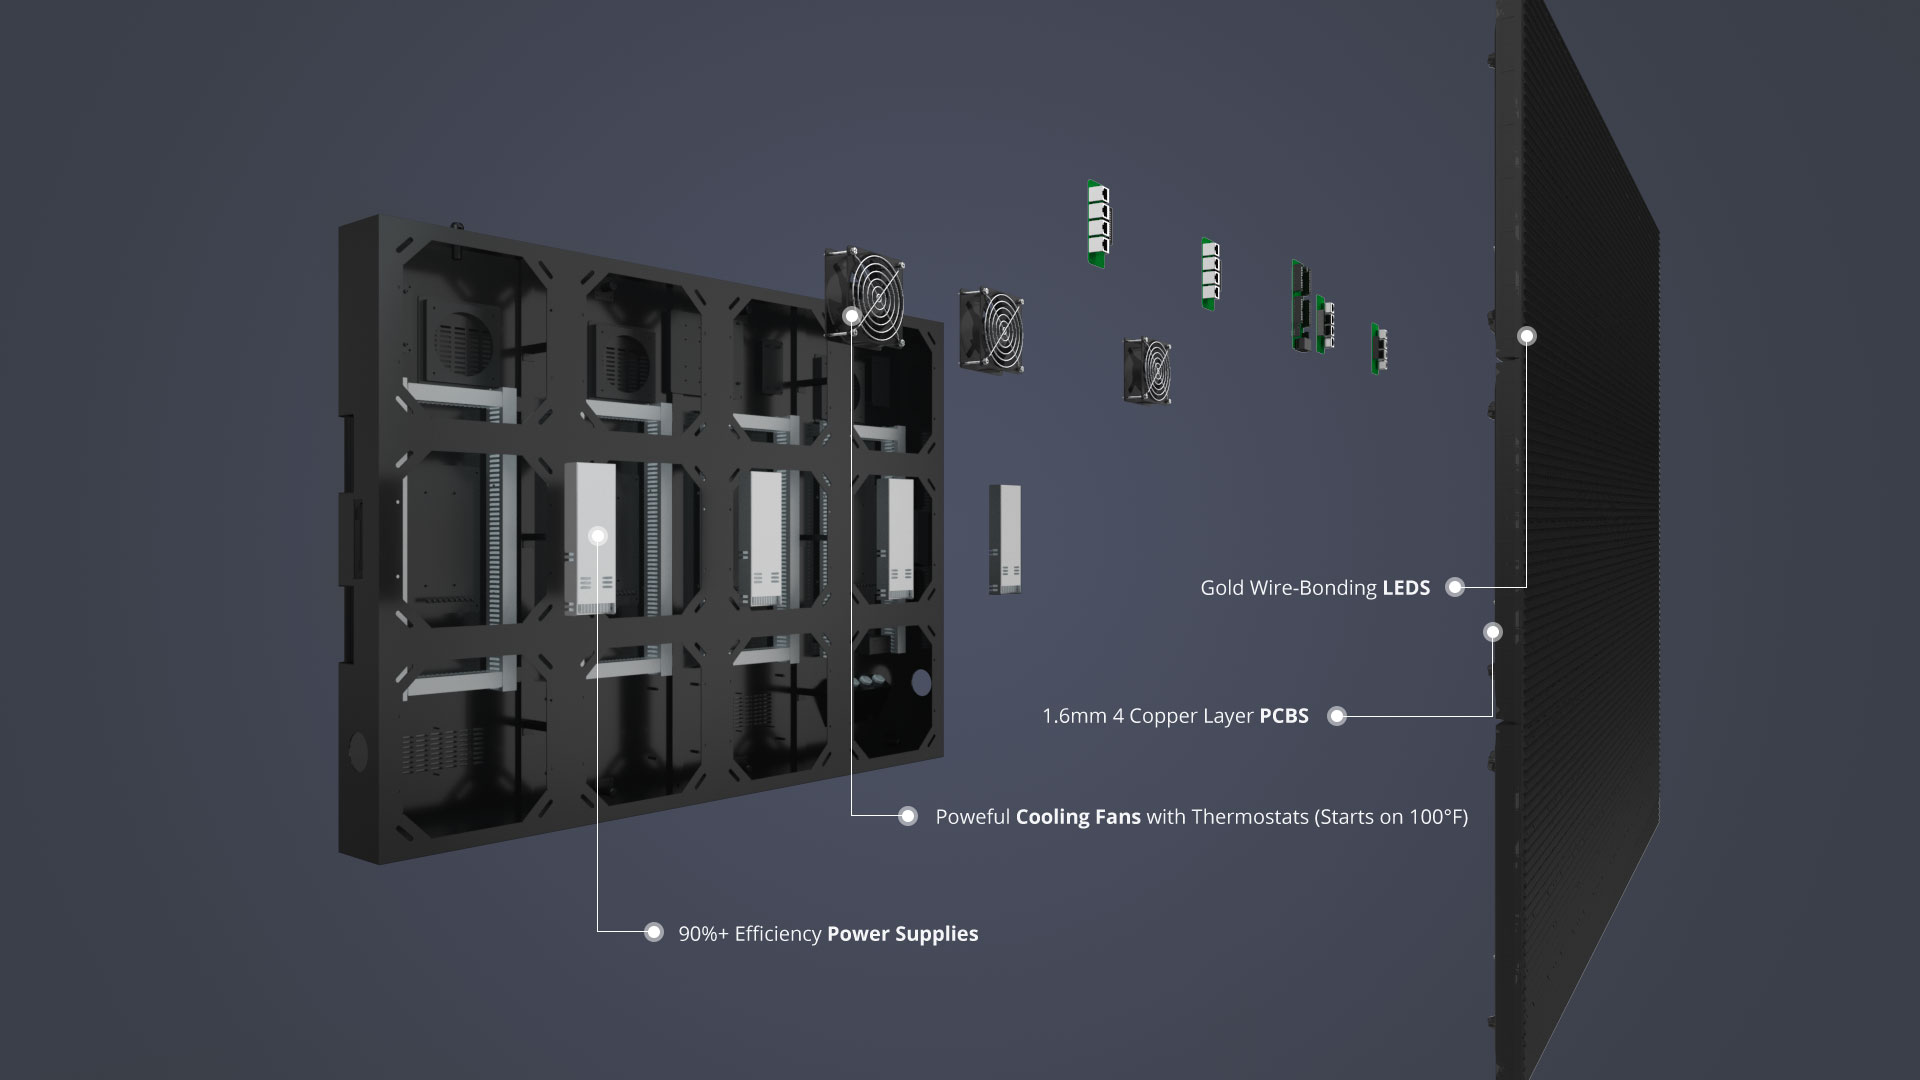 Solid Components & Sectional-in-row Cabinet Architecture